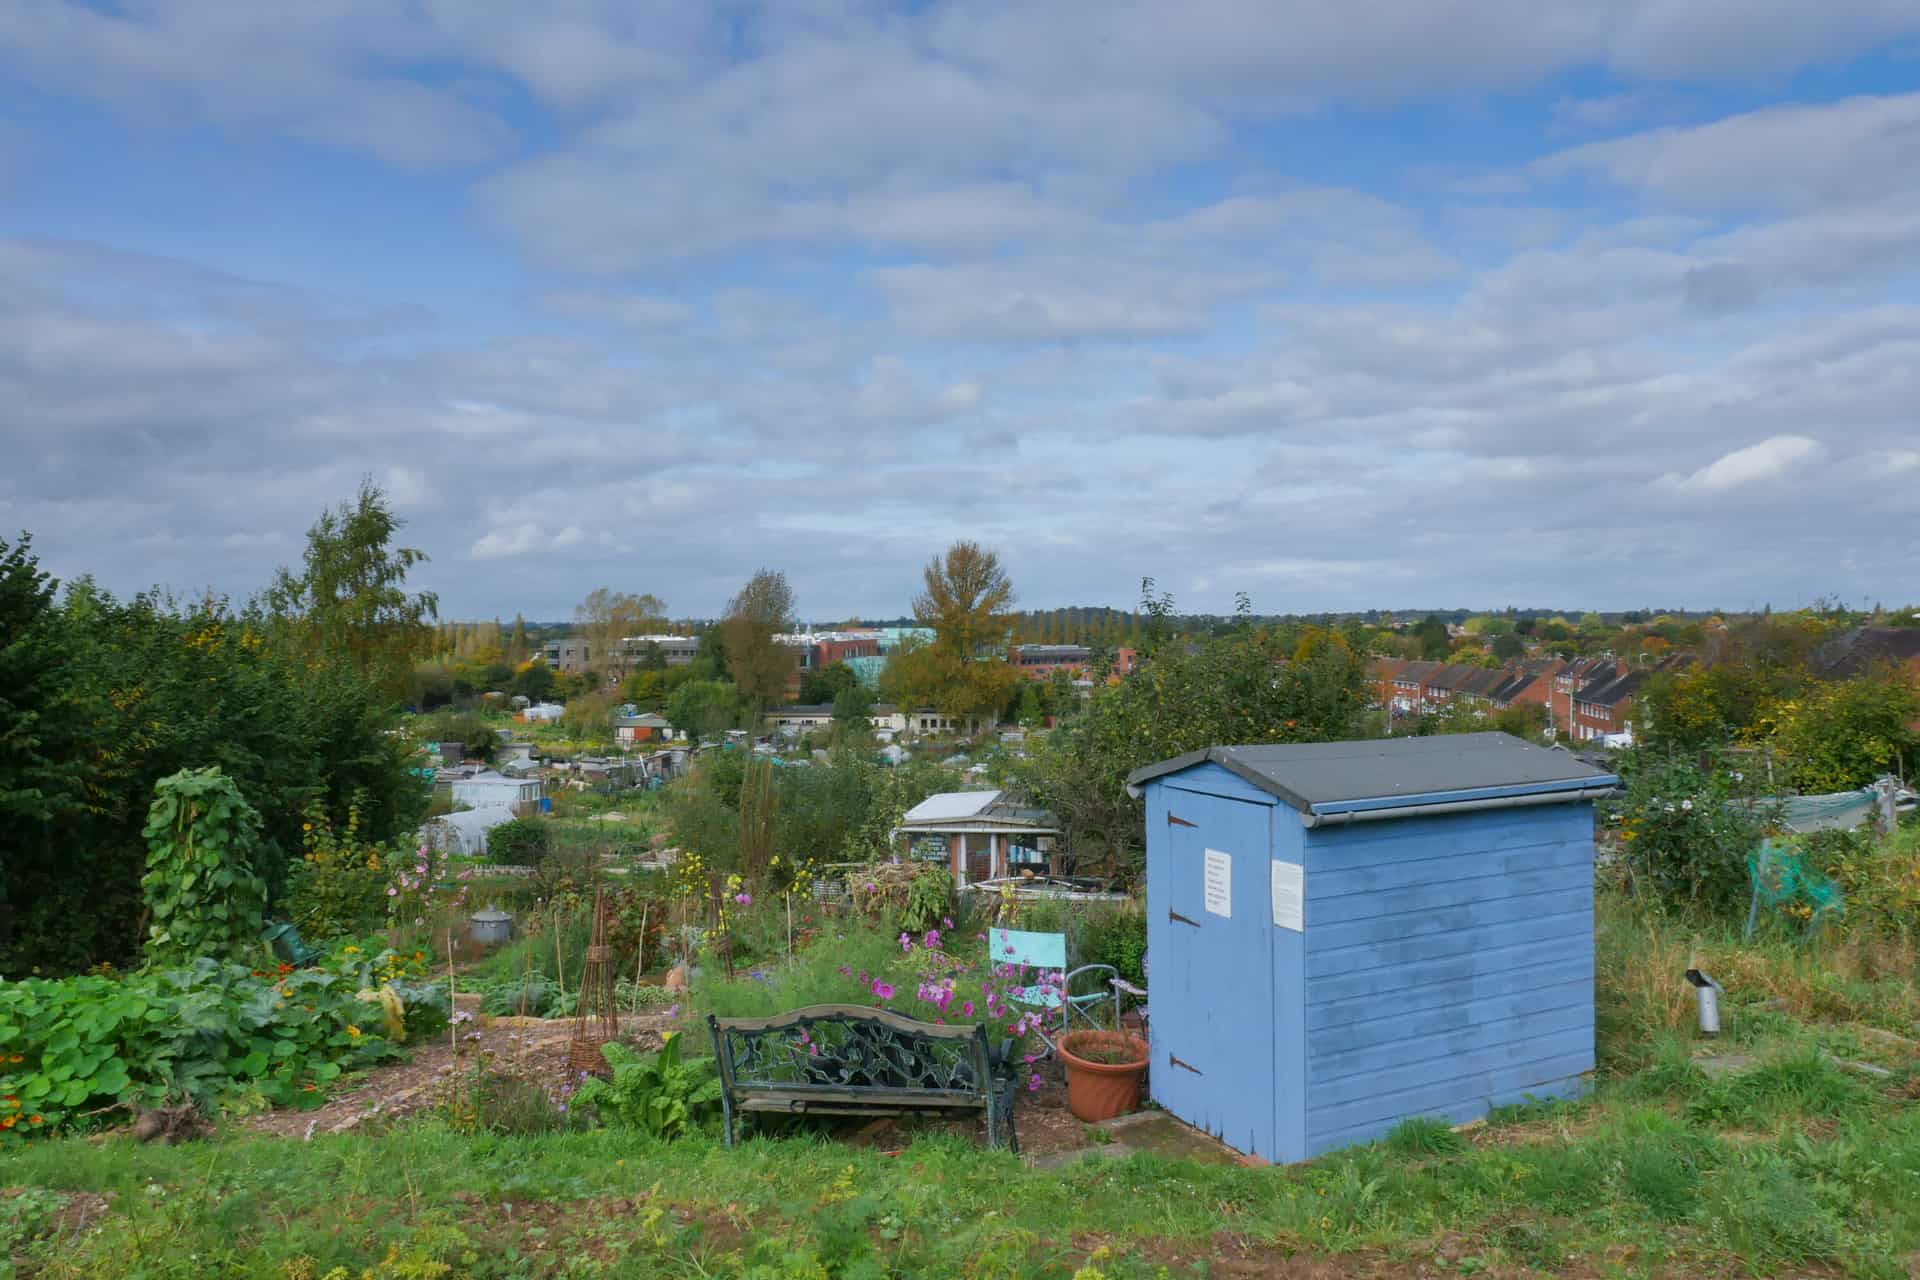 The Boundary Way Allotment and Community Garden, with the Camera Obscura in the foreground (blue shed).